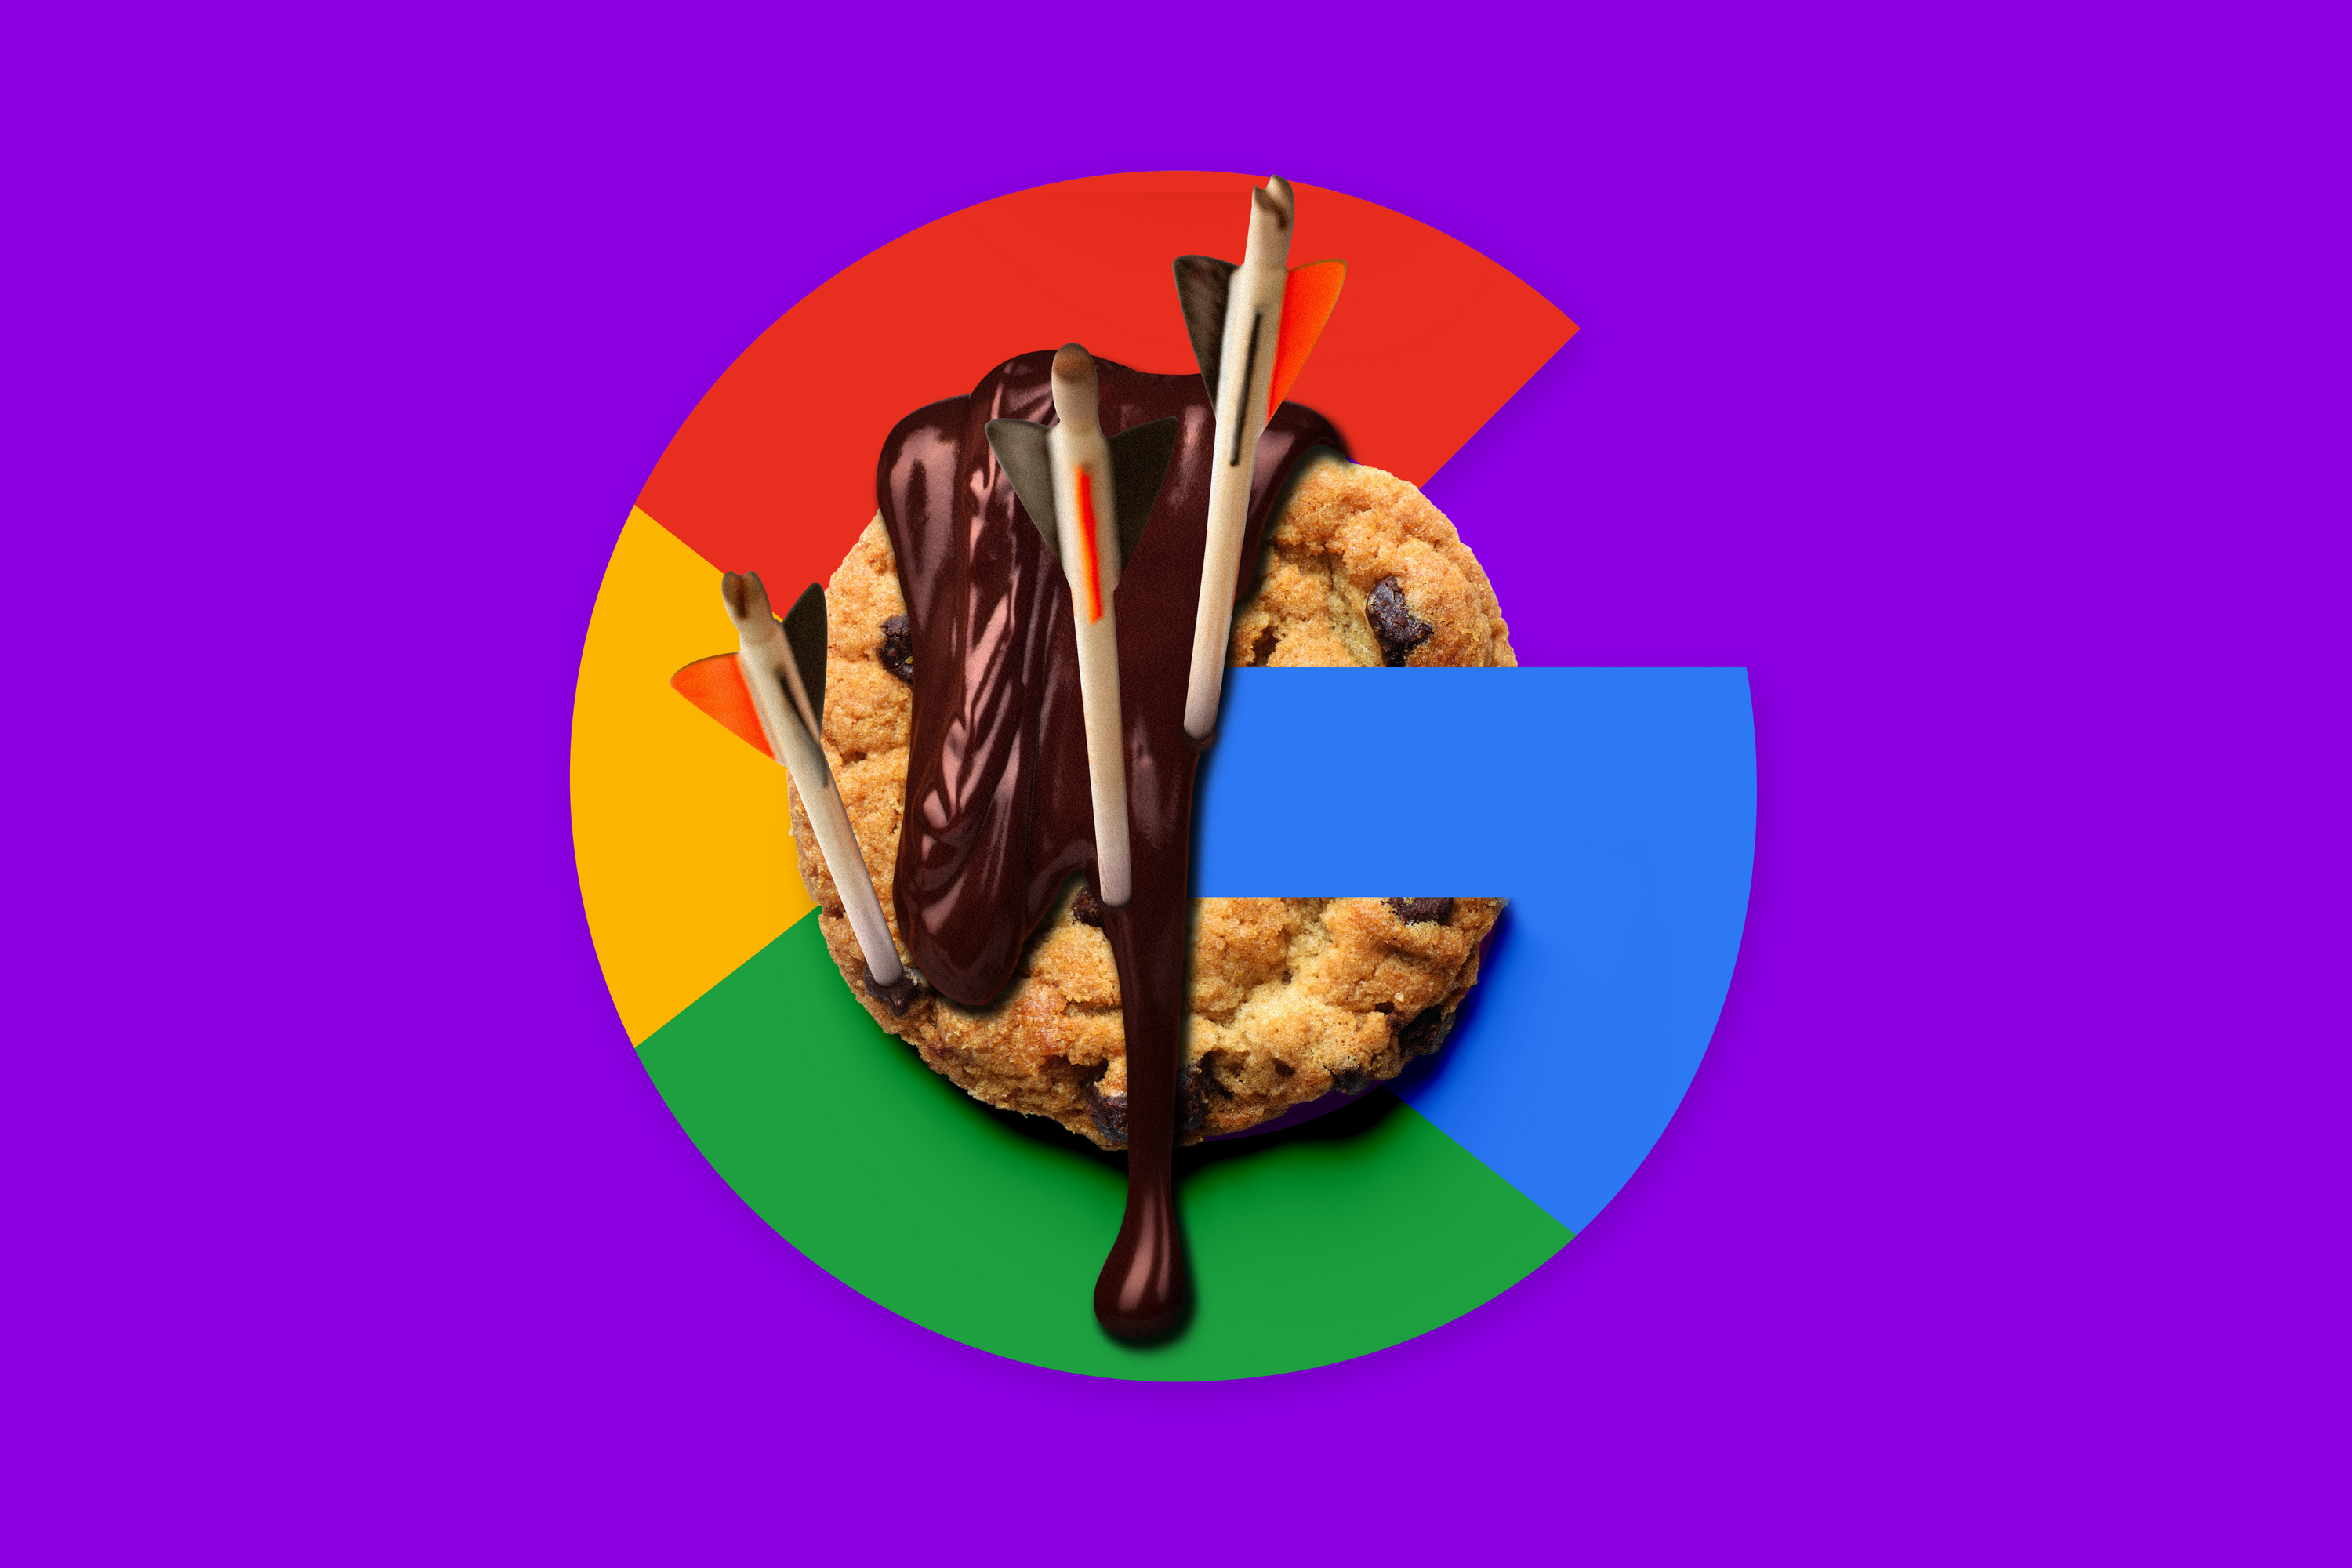 Mozilla Firefox and Apple Safari first killed third-party cookies and now Google Chrome is joining the fray, creating a watershed moment for the global ad industry.